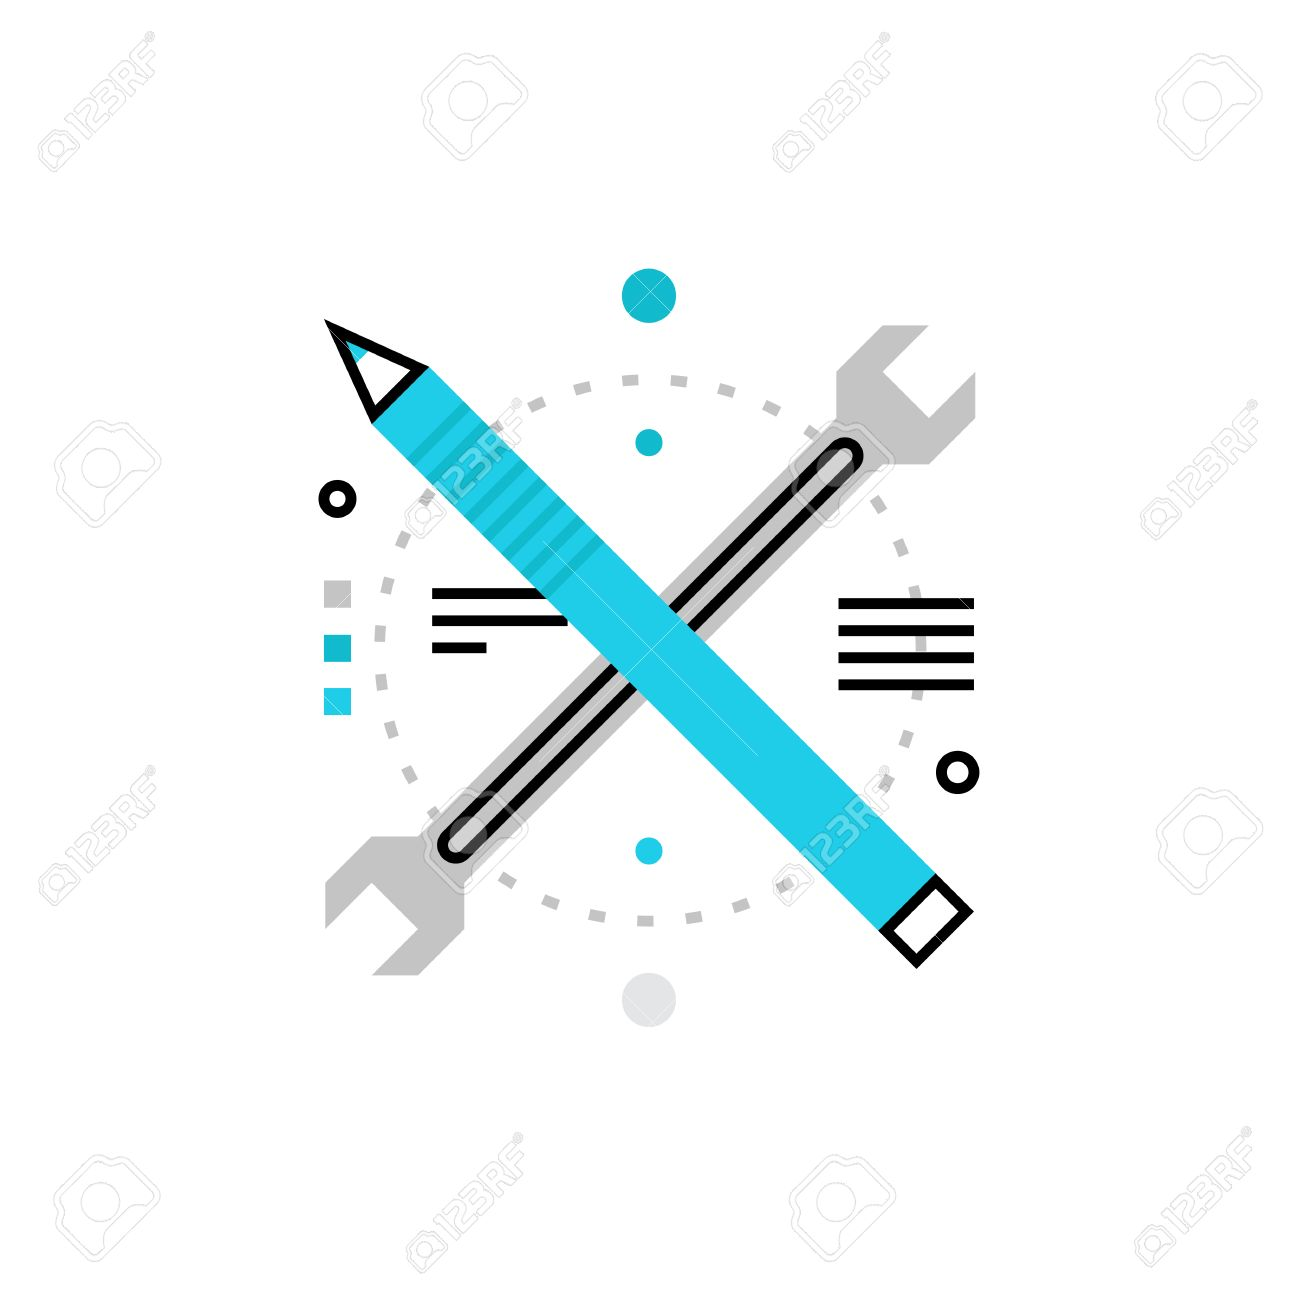 Modern Vector Icon Of Development Tools Architecture And Engineering Instruments Premium Quality Illustration